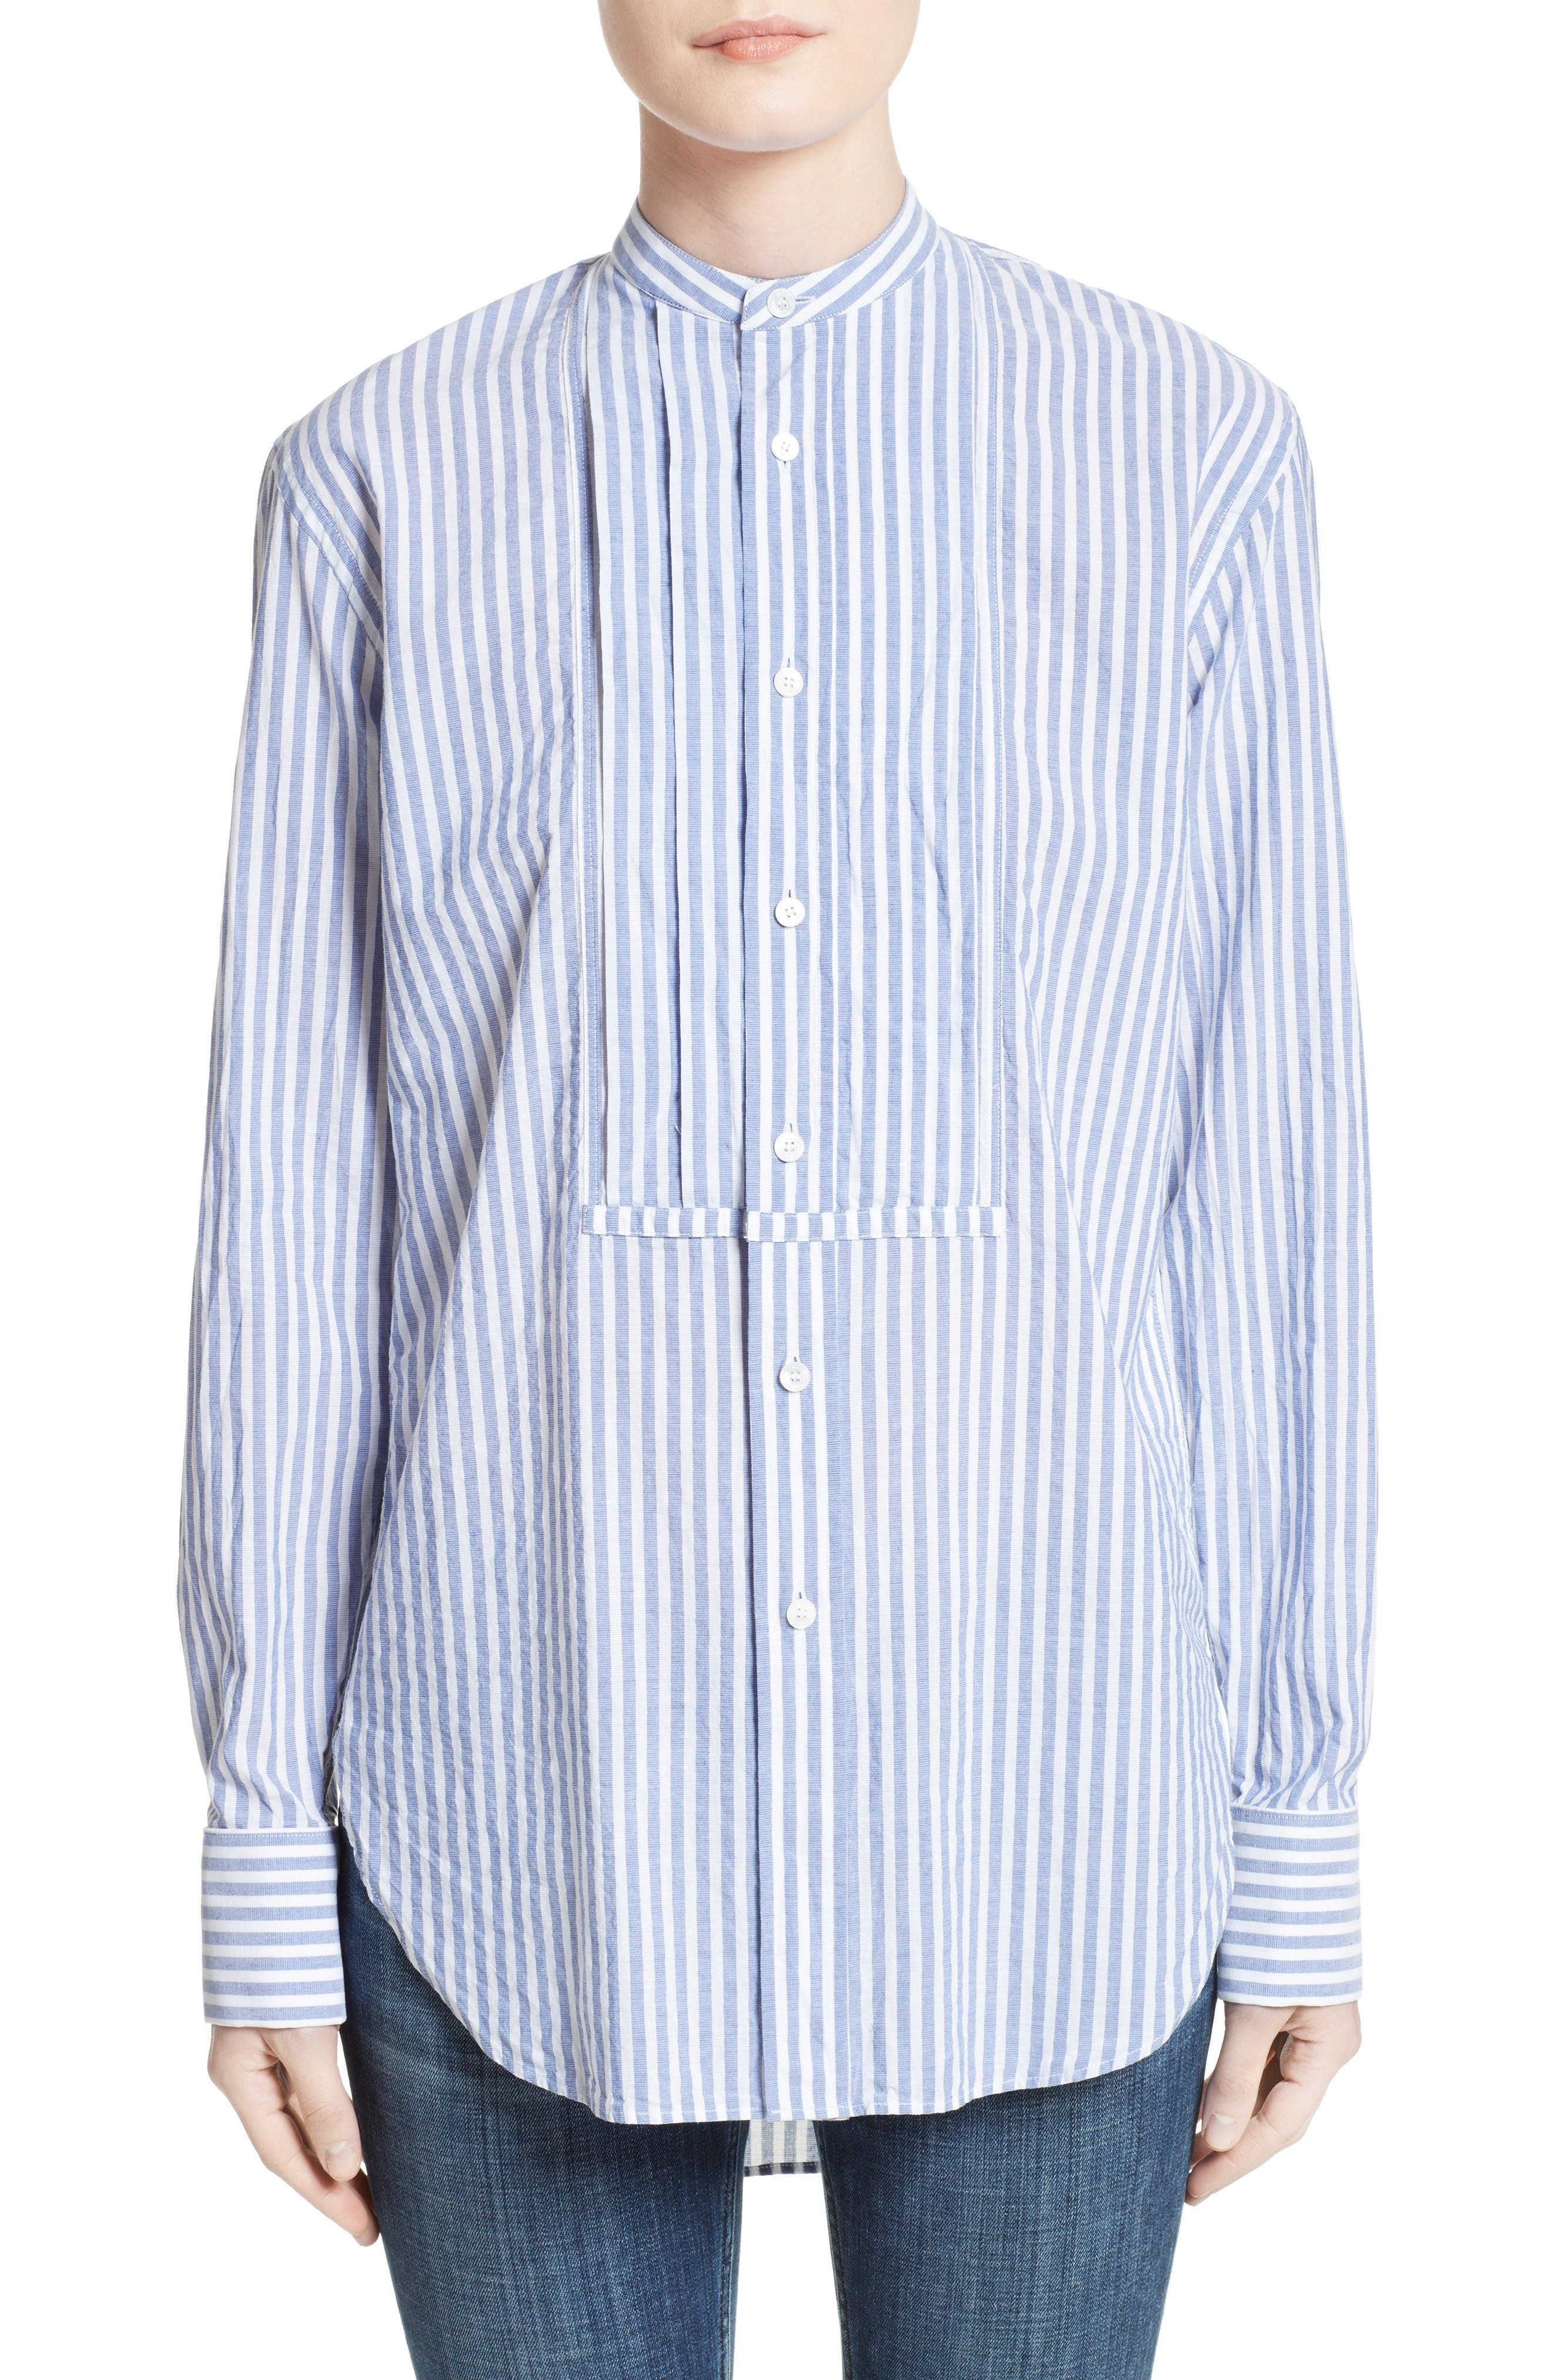 Benfleet Stripe Cotton Top,                         Main,                         color, Pale Blue/ White